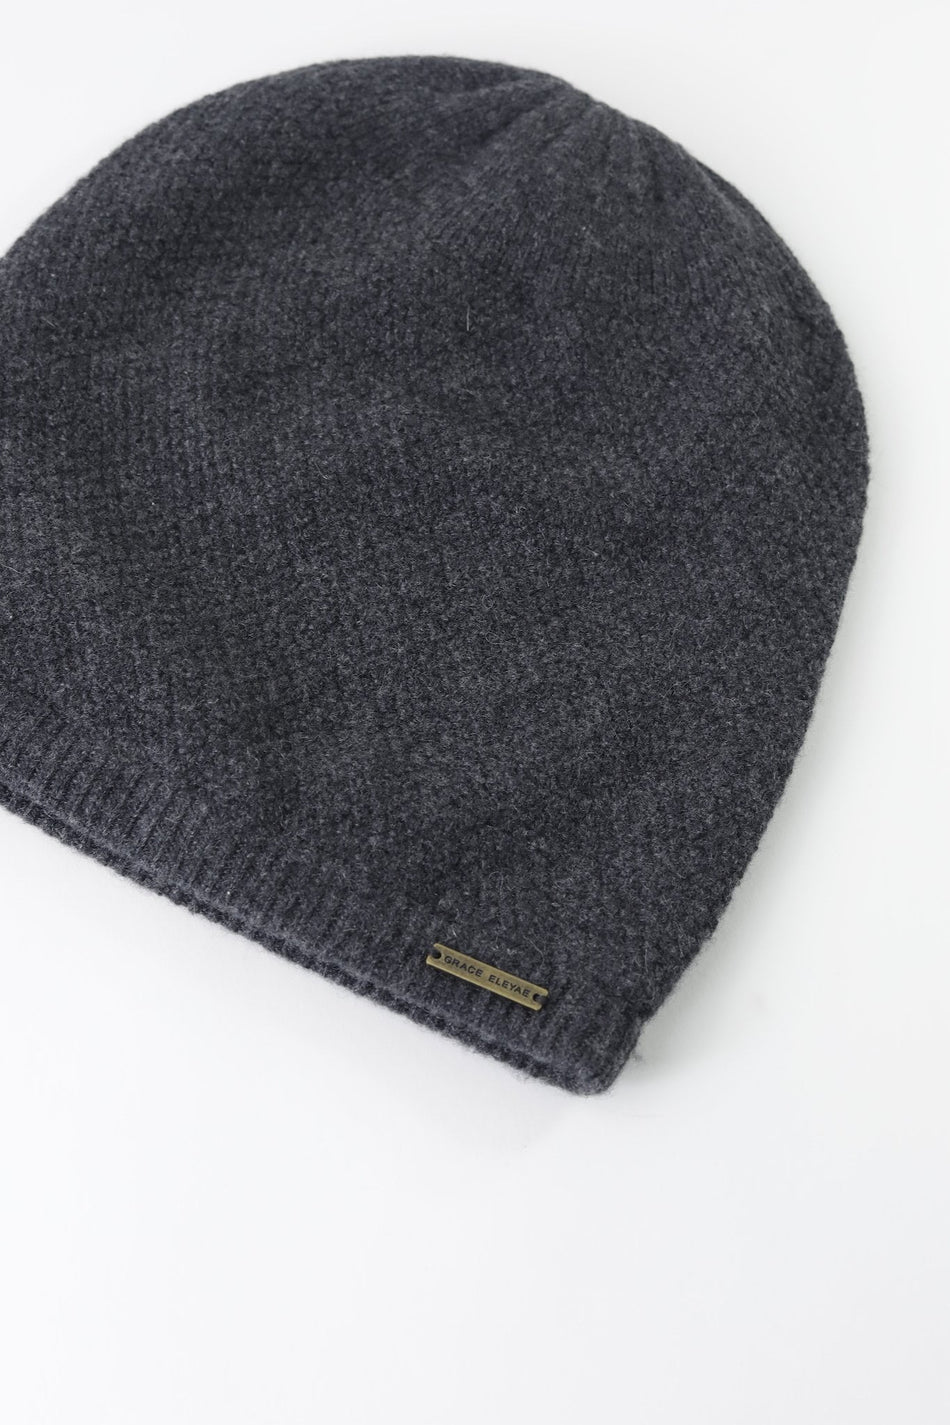 Dark Gray Cashmere Slap